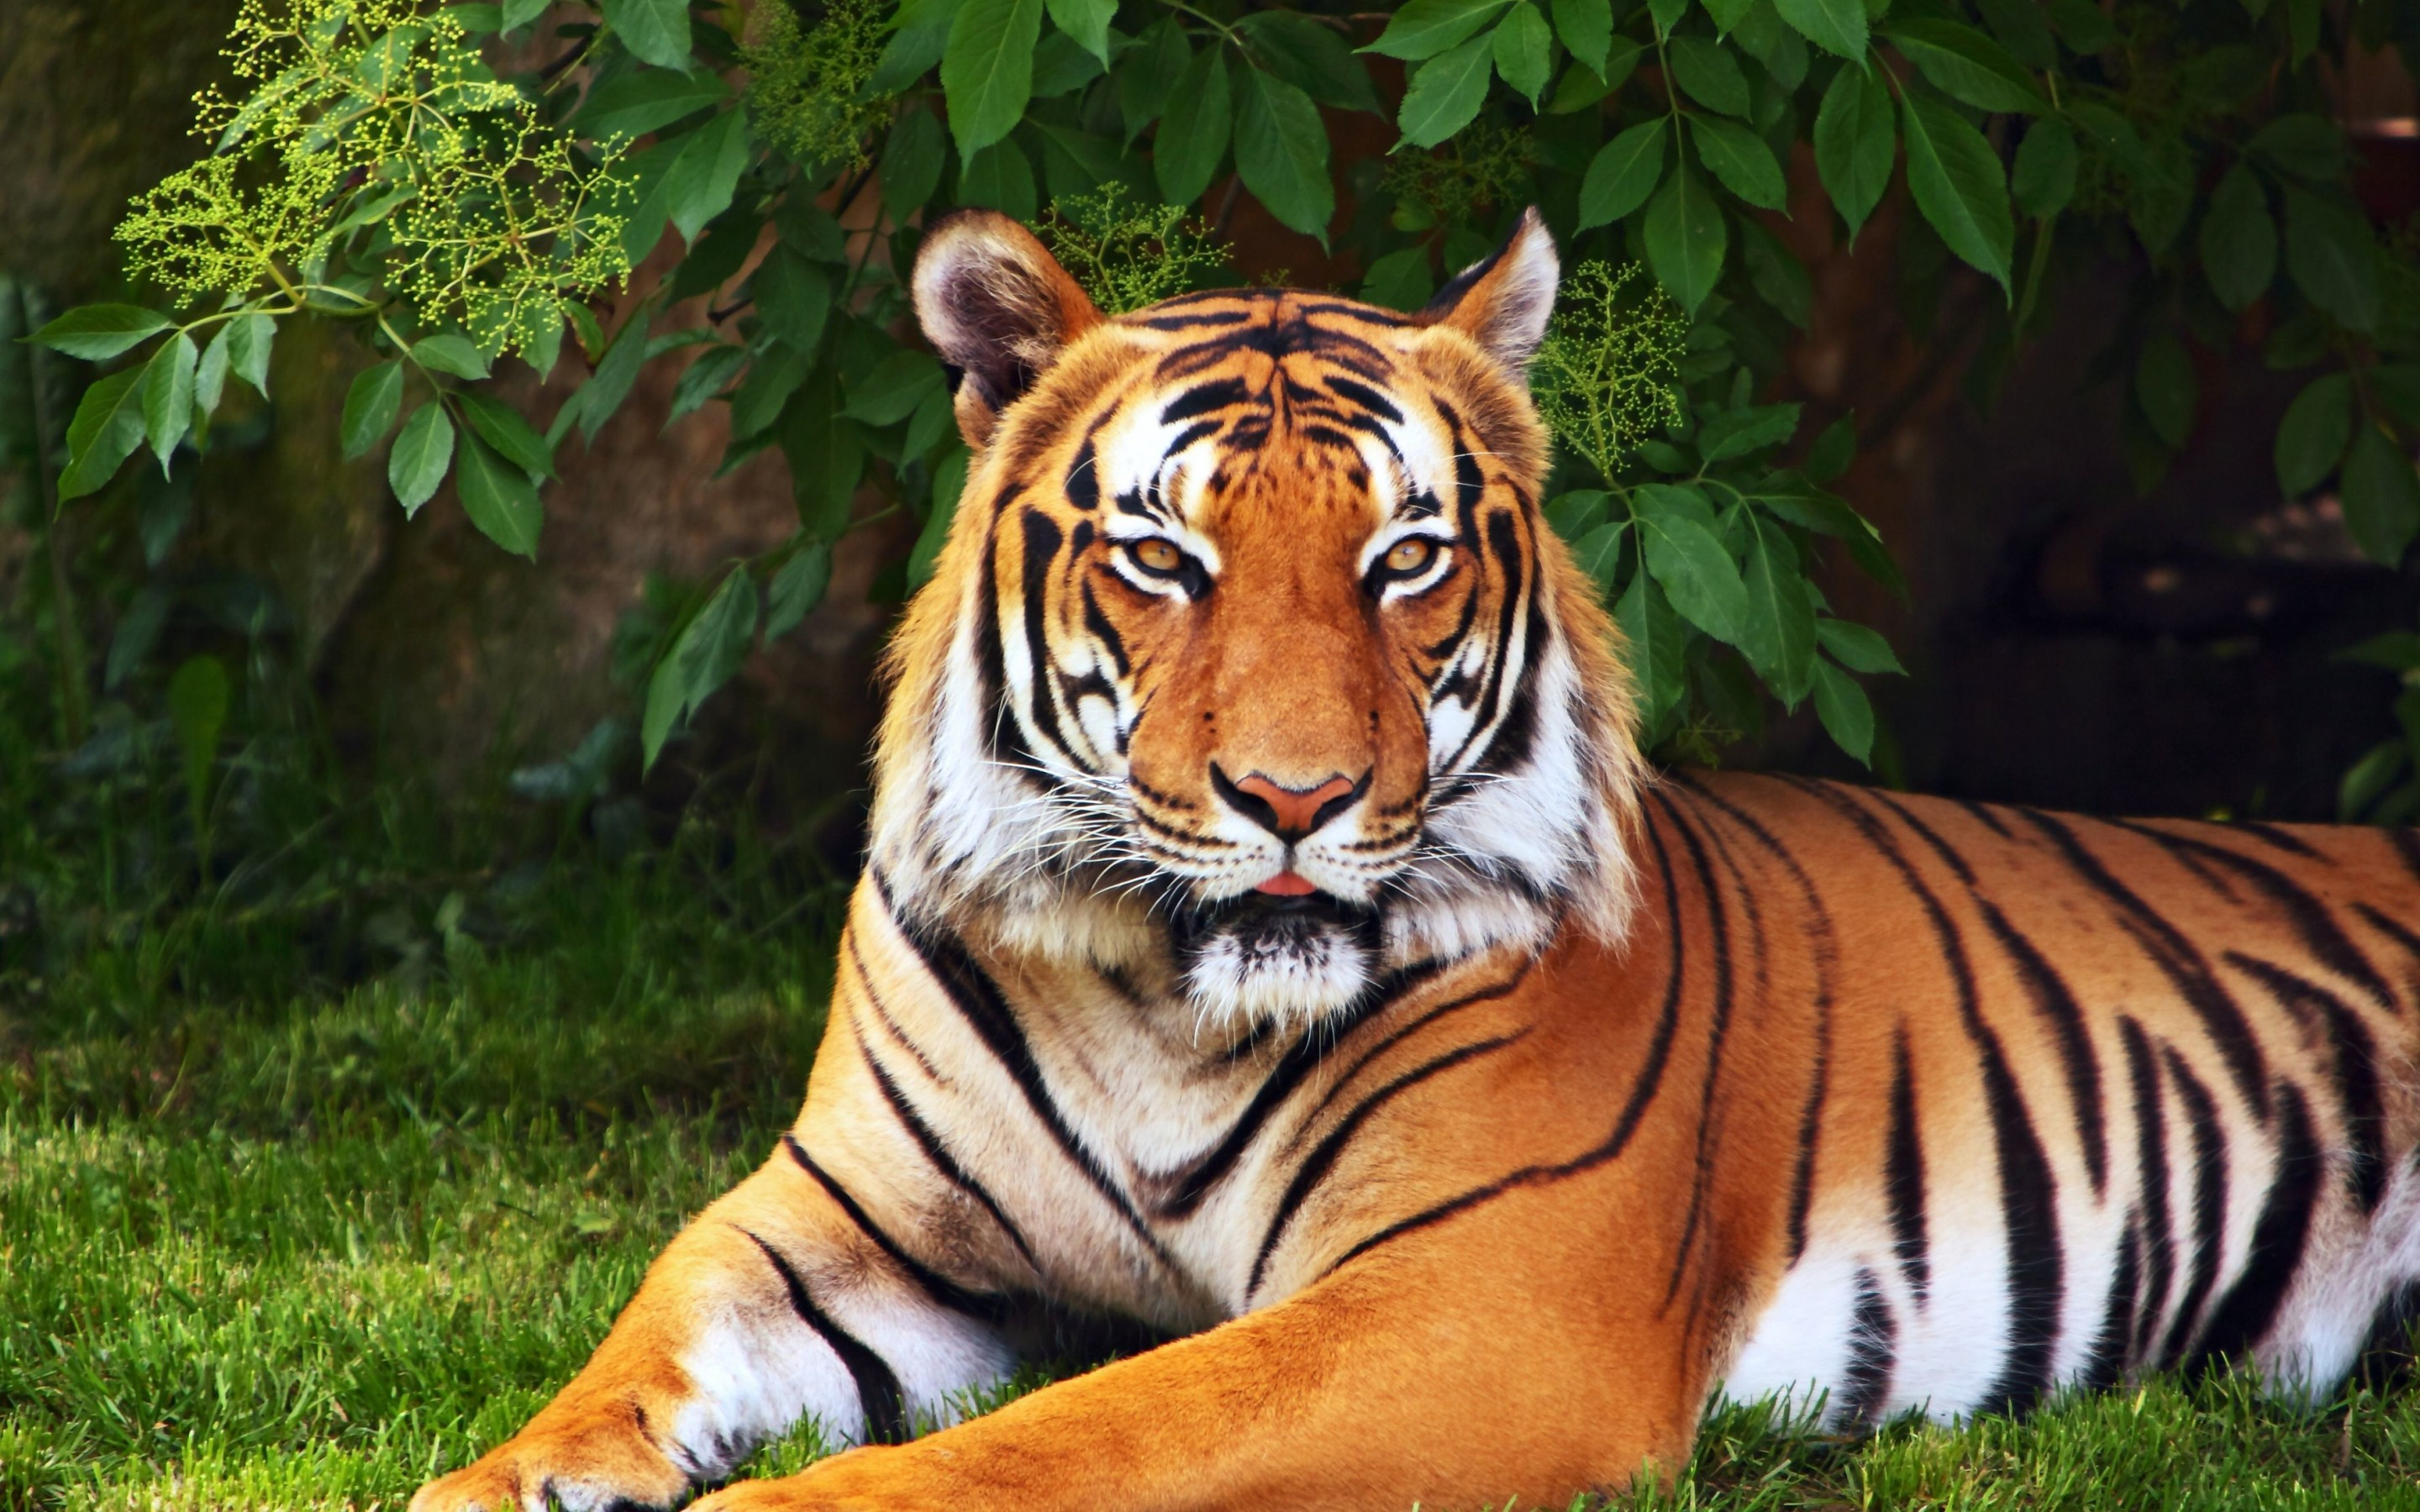 Tiger Hd Wallpaper Background Image 2880x1800 Id 436232